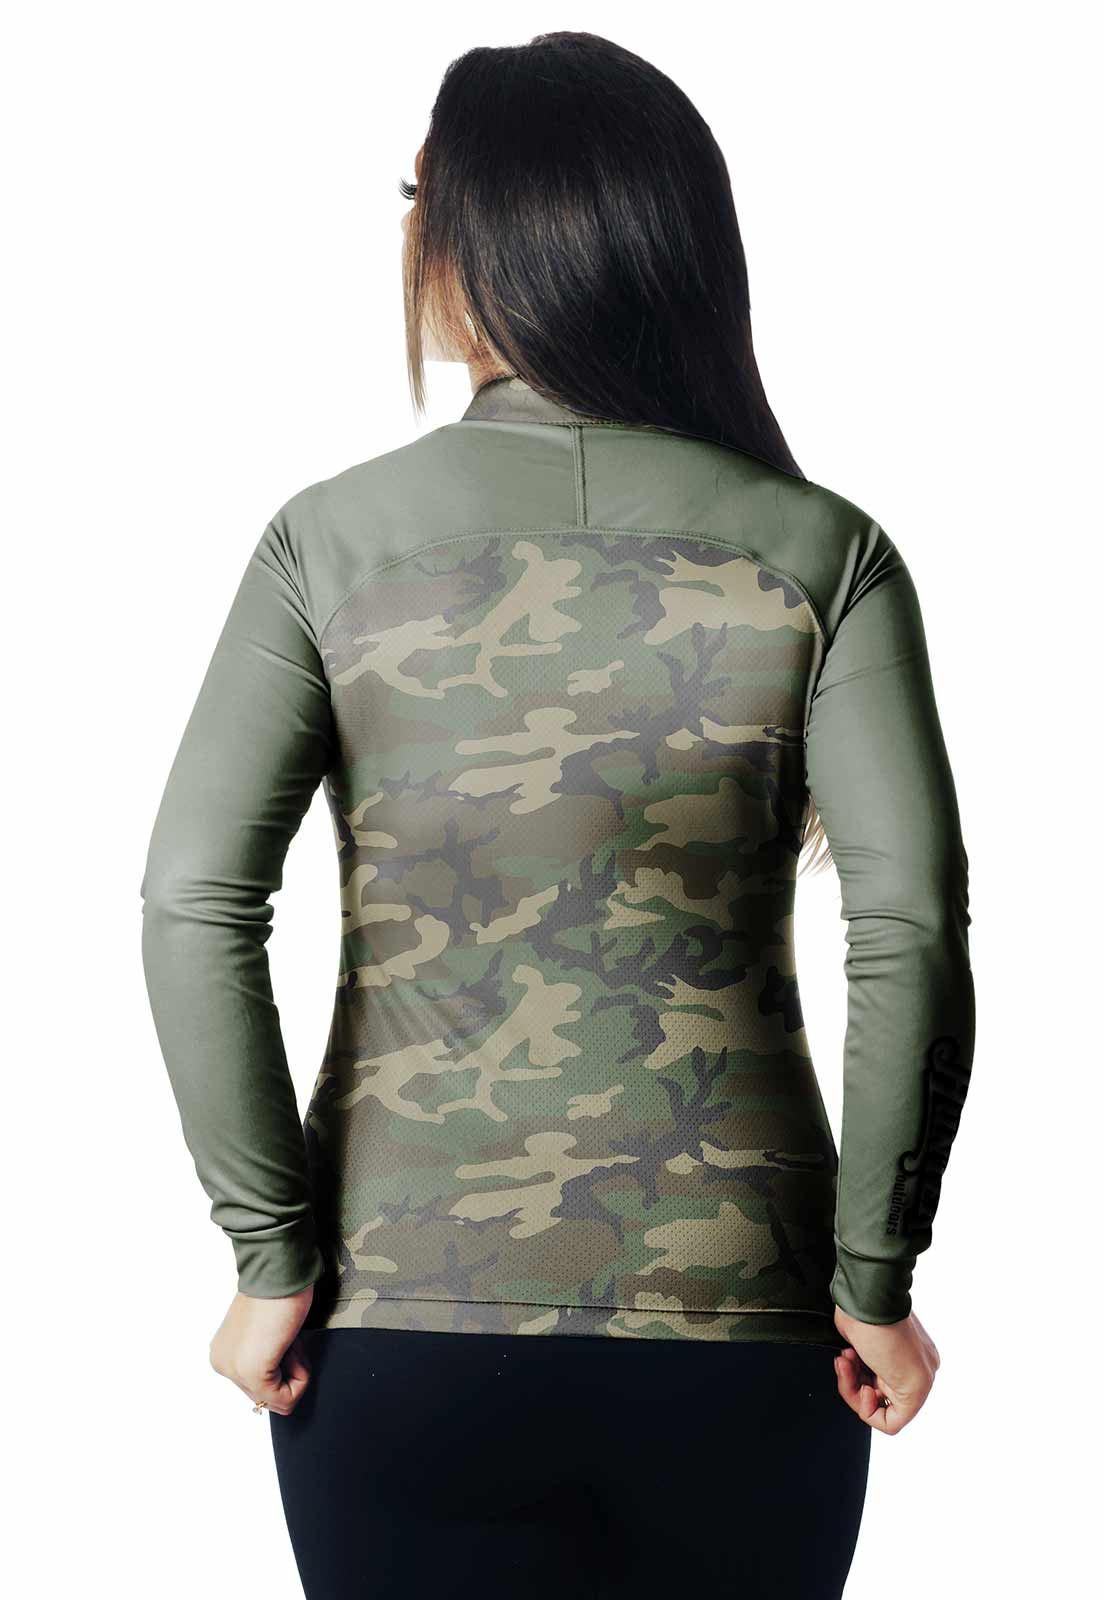 CAMISA DE PESCA FISH CAMUFLADA PRO 17 FEMININA + BANDANA GRÁTIS  - REAL HUNTER OUTDOORS